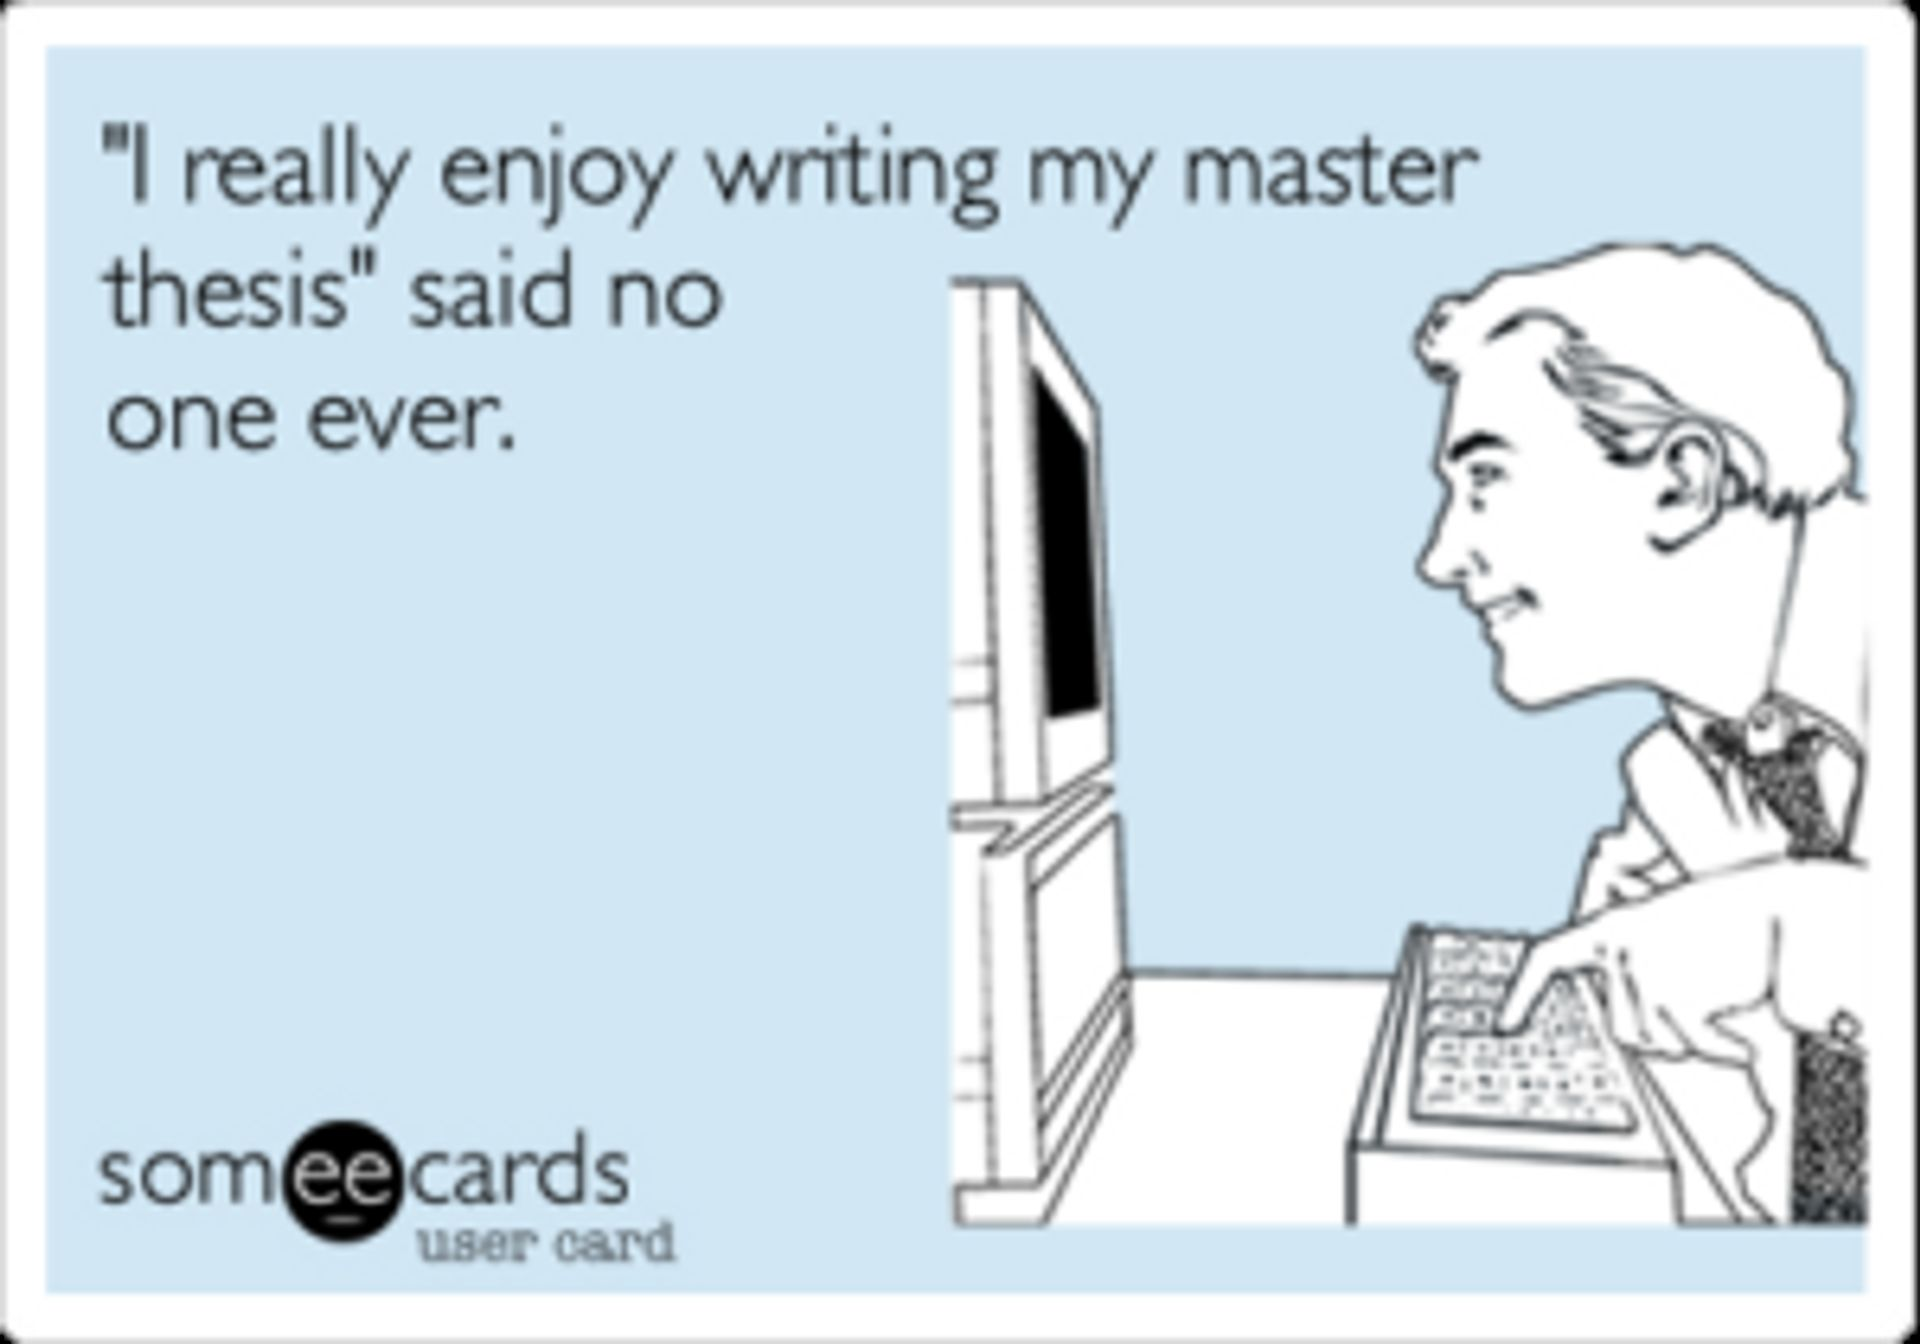 """A man looking at a computer, the caption reads '""""I really enjoy writing my master thesis"""" said no one ever.'"""